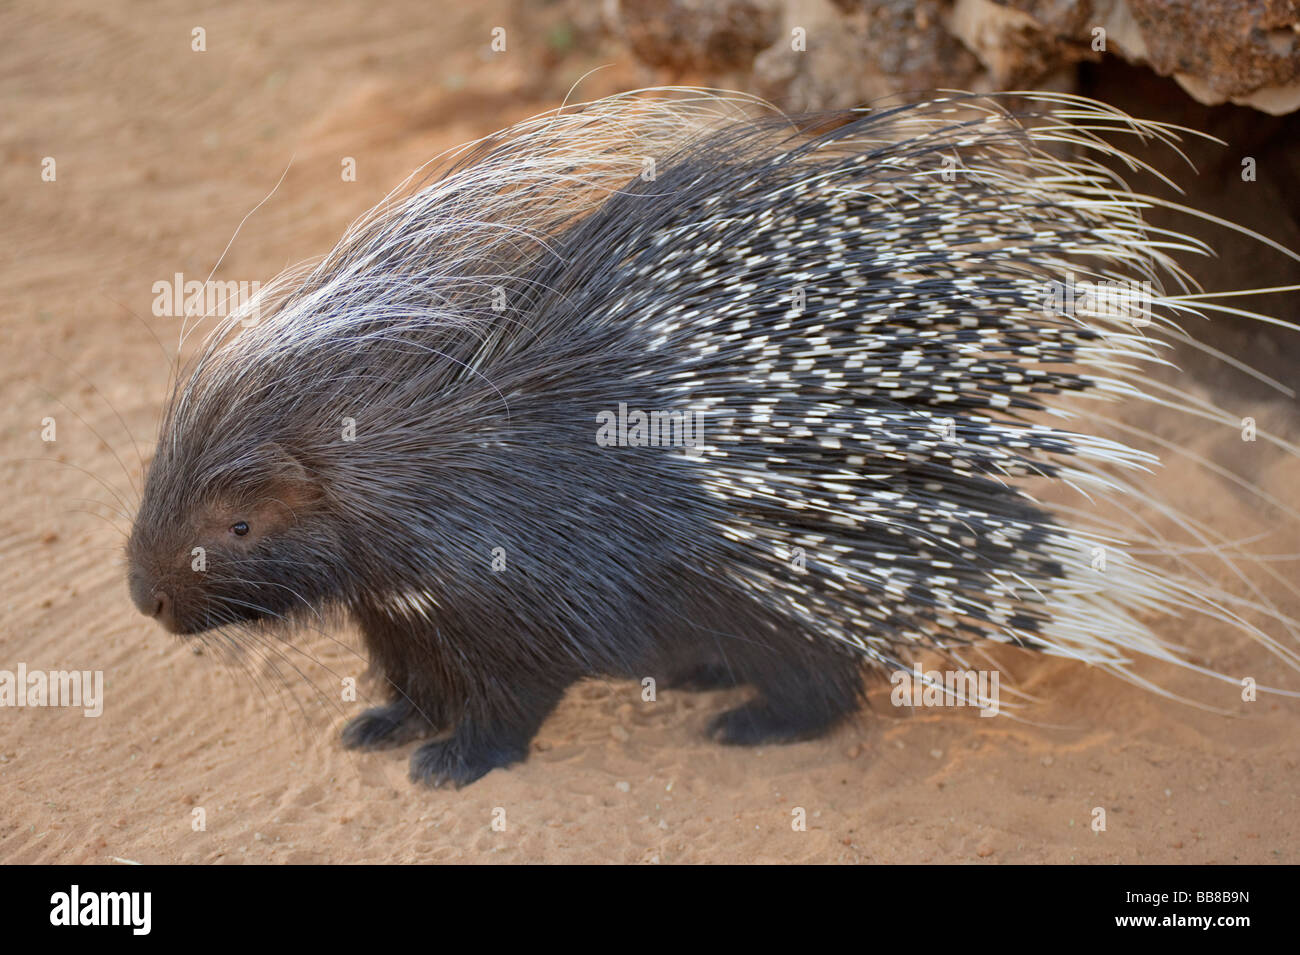 Cape Porcupine or South African Porcupine (Hystrix africaeaustralis) in a cage on the Zelda Game & Guest Farm, - Stock Image